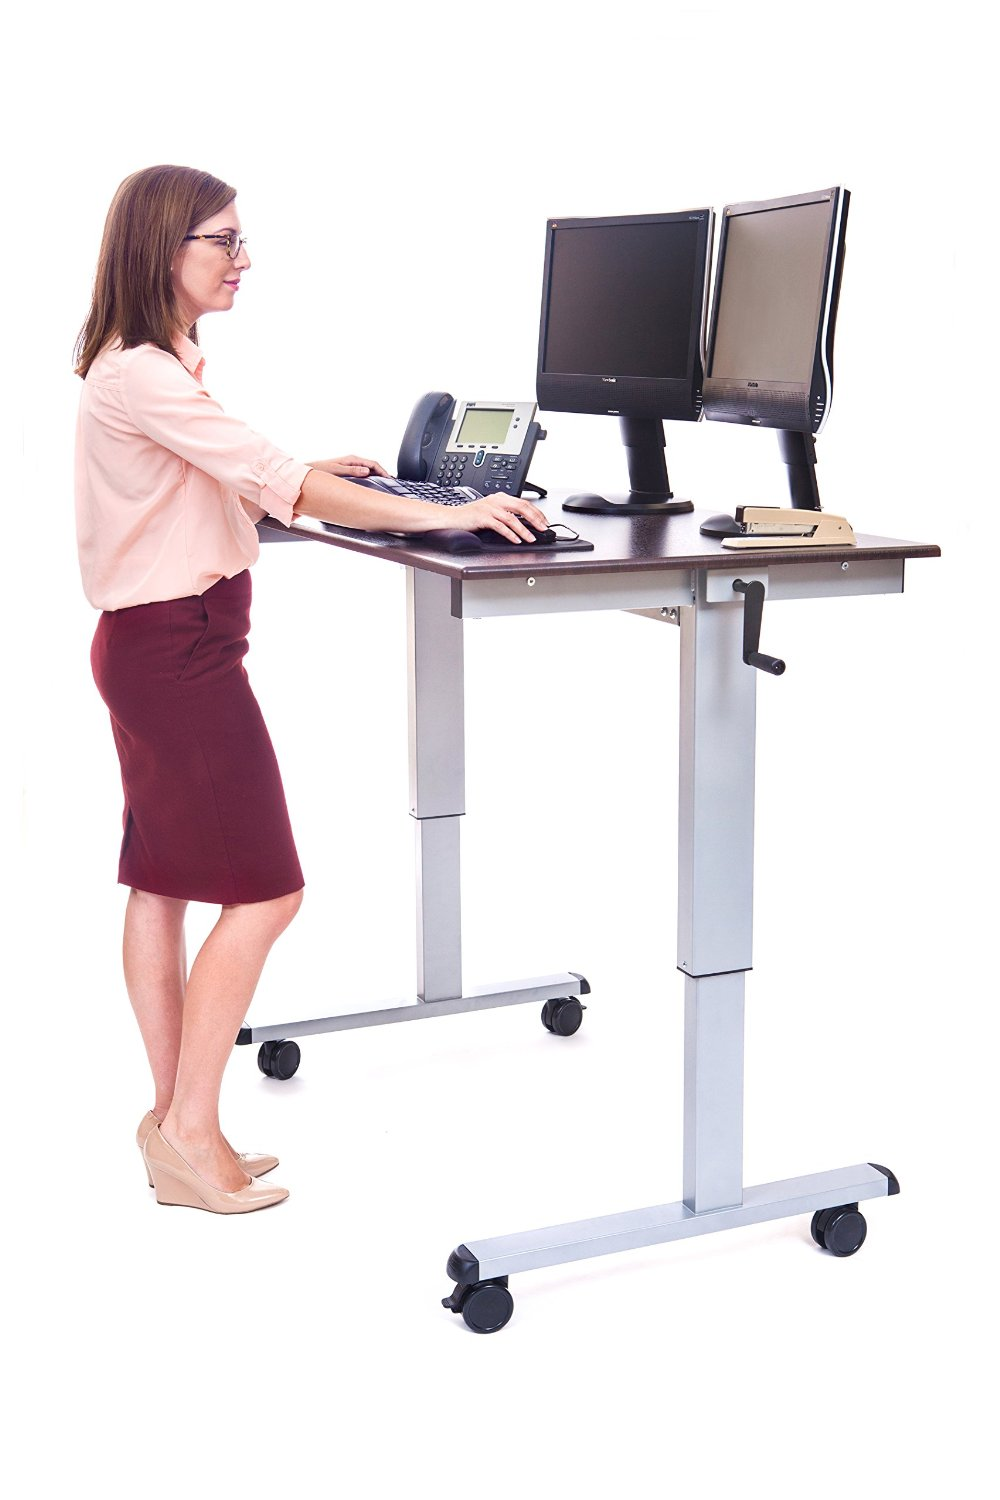 5. Stand Ready Stand Up desk